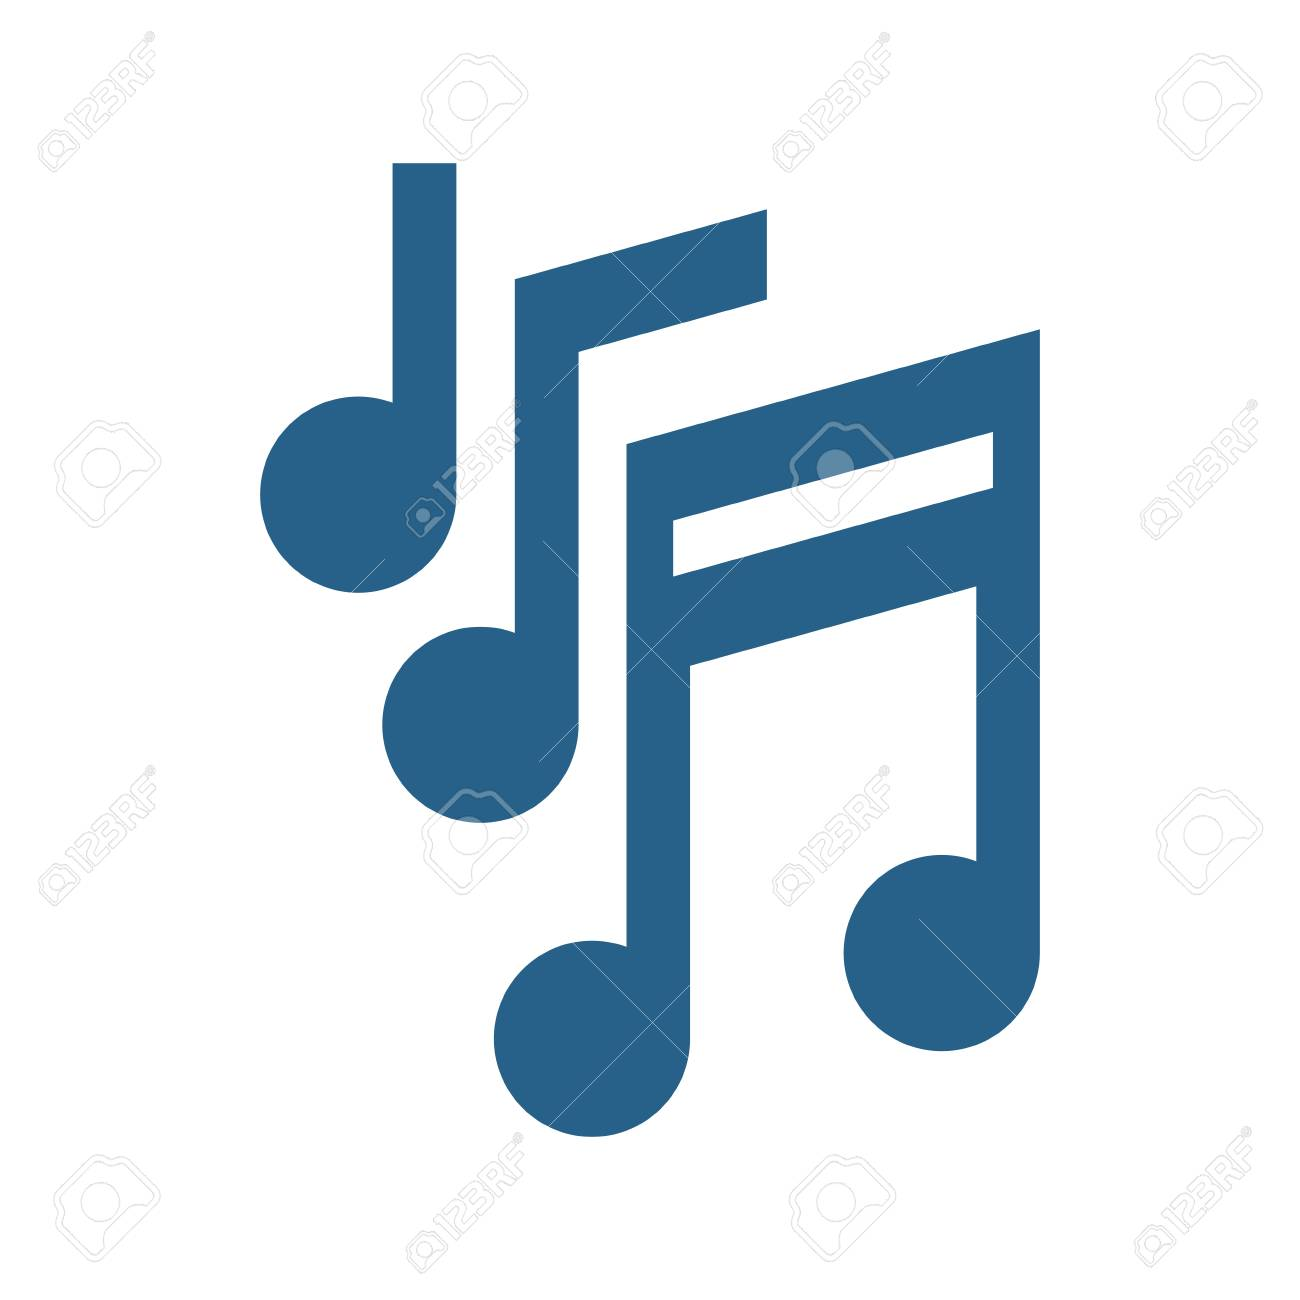 Music Notes Symbol Icon Vector Illustration Graphic Design Royalty